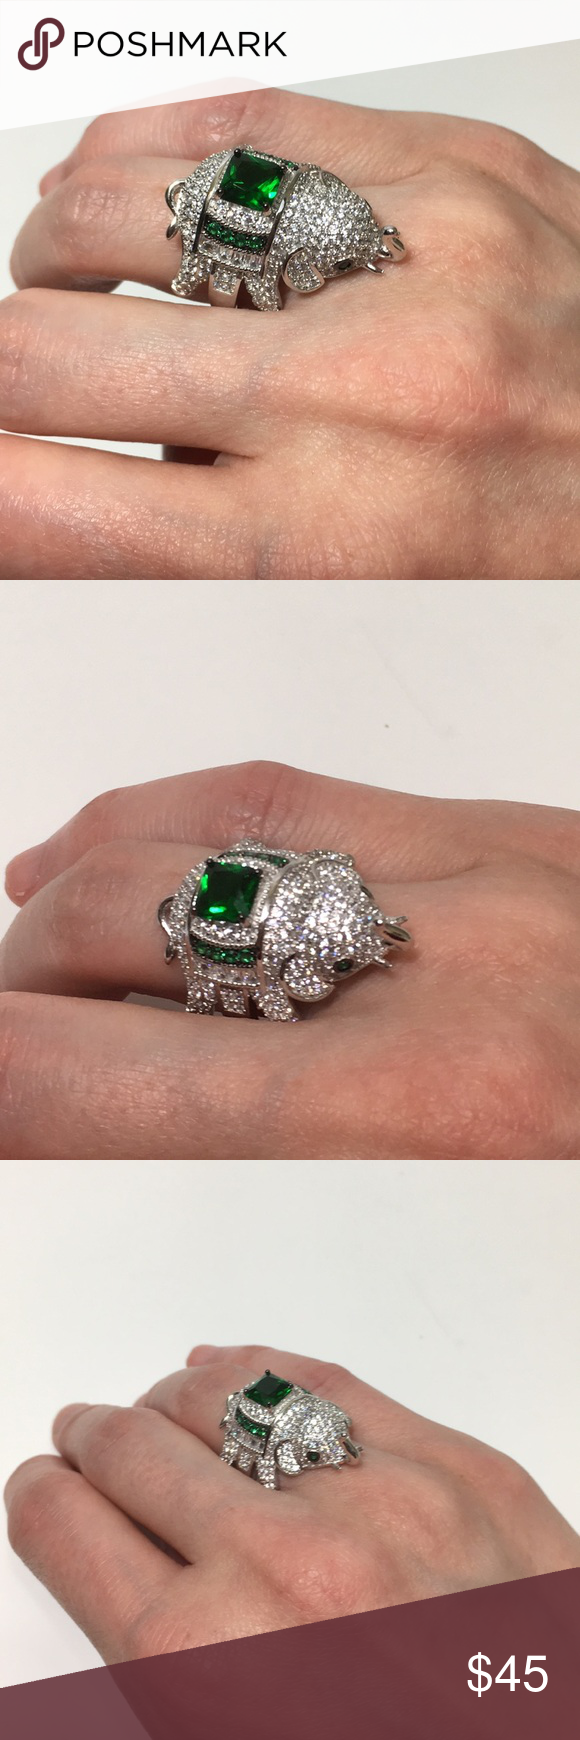 925 Sterling Silver Emerald Green CZ Ring Sz 7 NWT Price